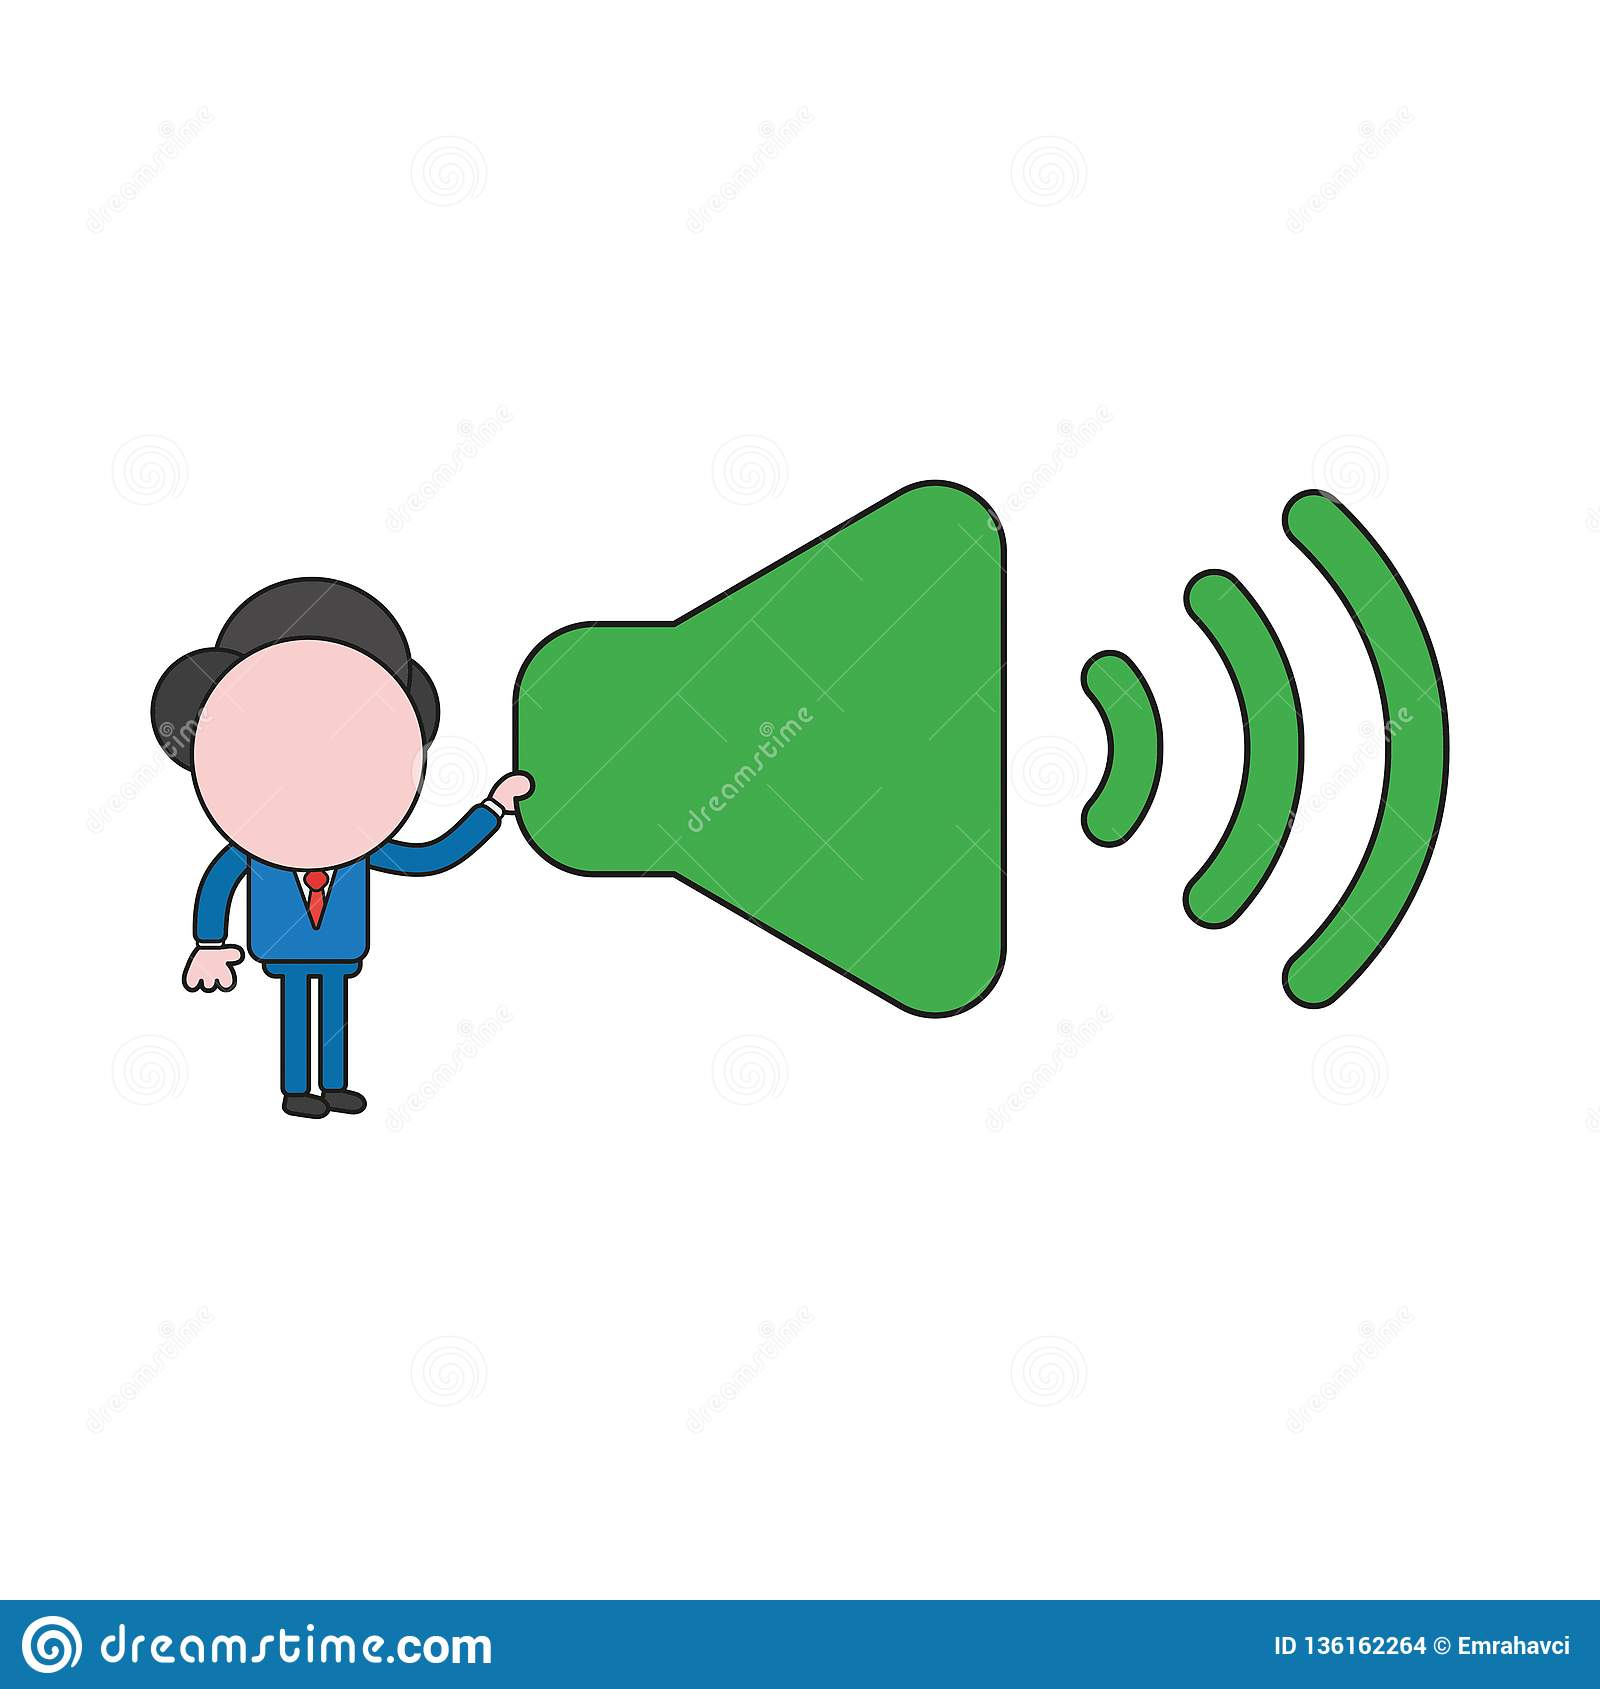 Vector illustration of businessman character holding sound on symbol. Color and black outlines